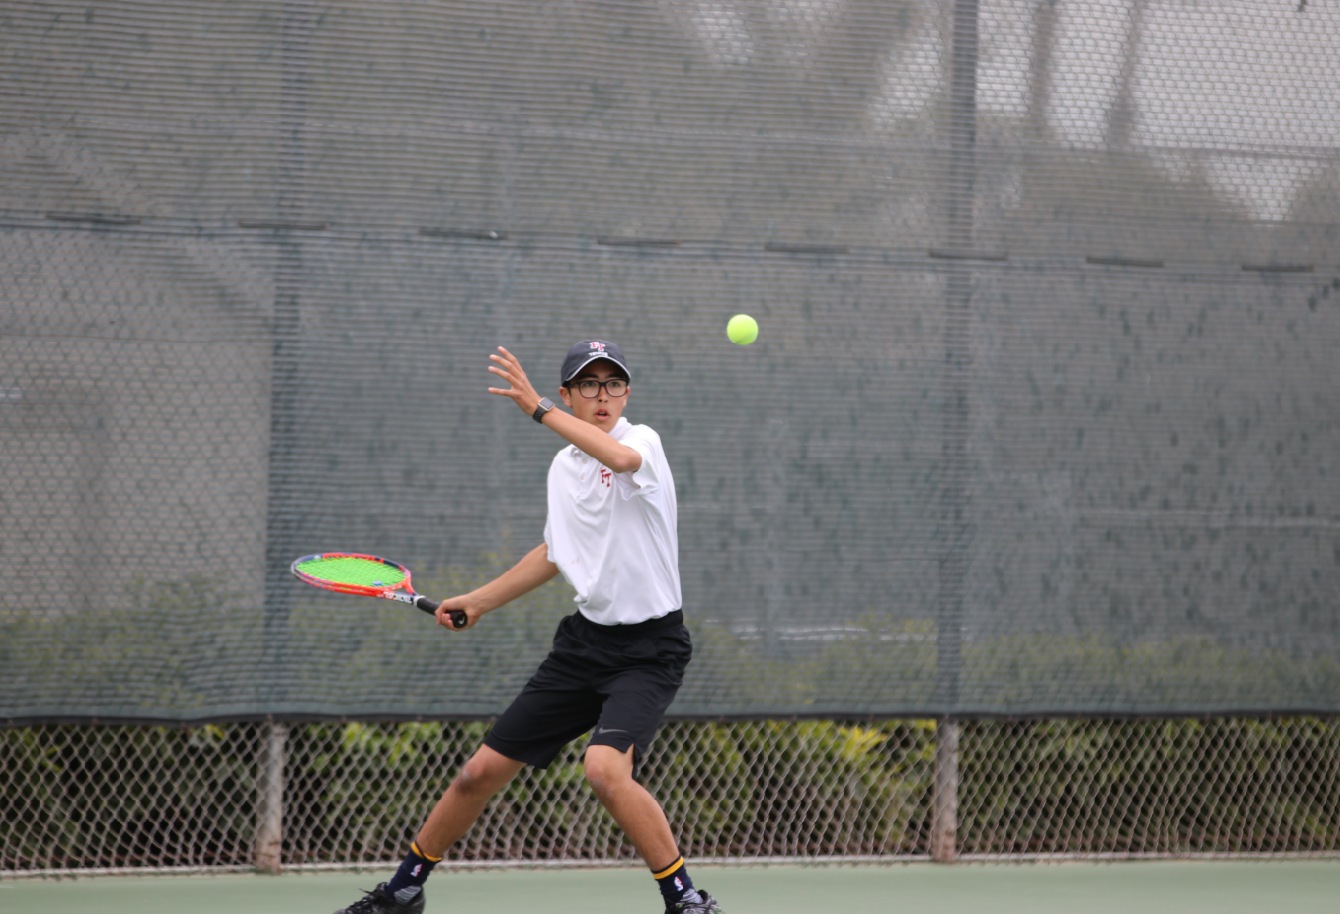 Trouble with doubles causes 13-5 loss for Boys' Tennis against Carpinteria